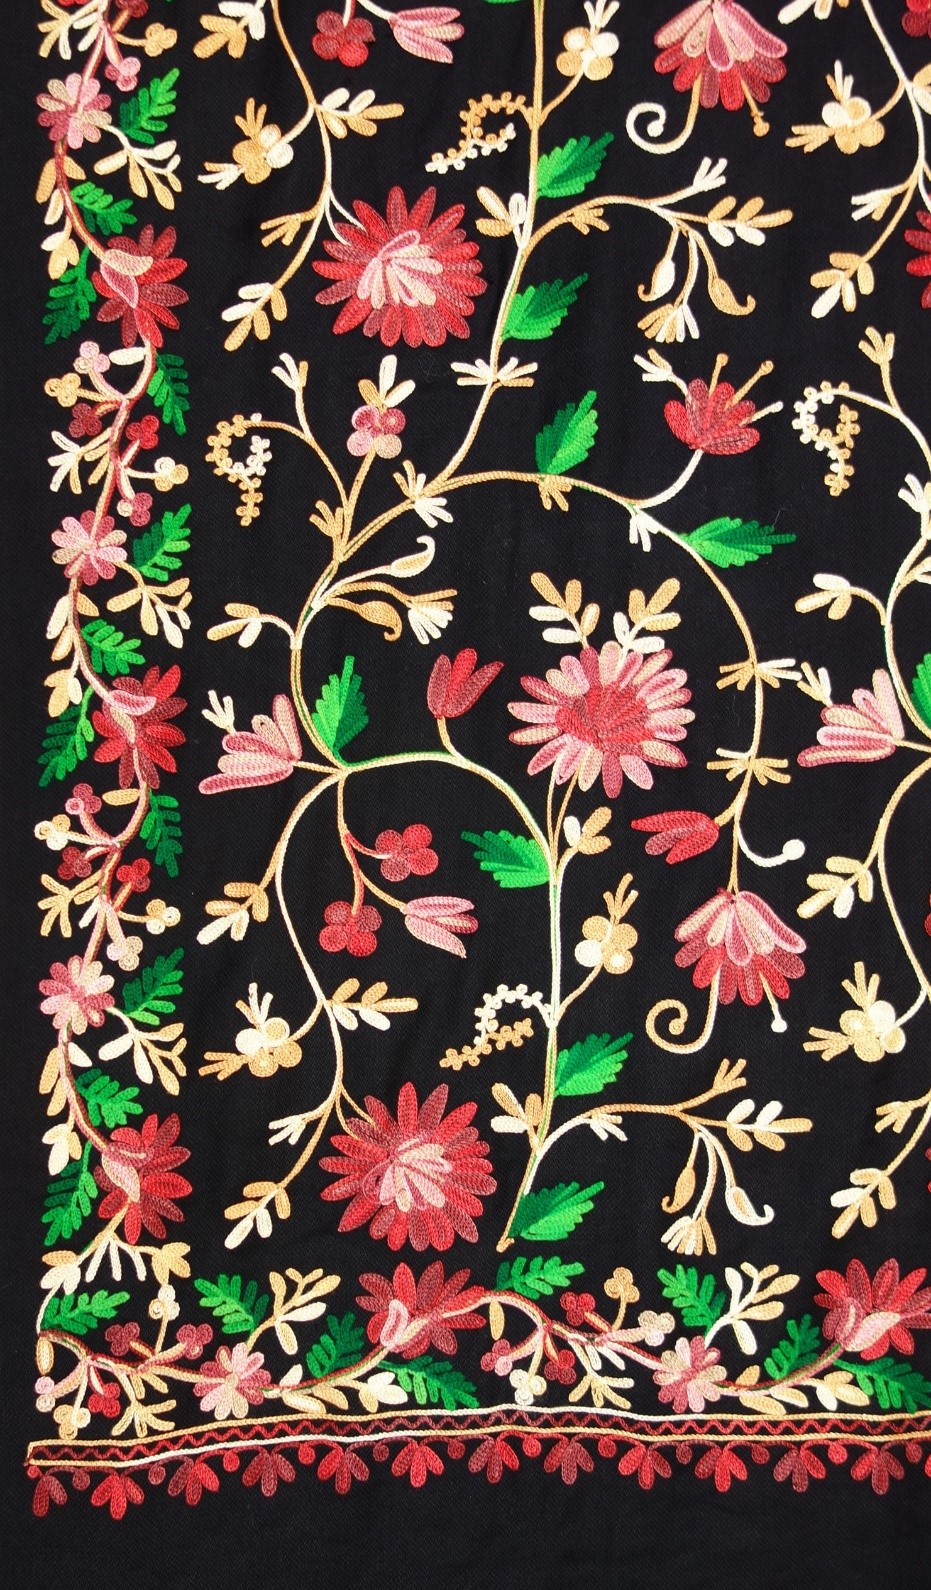 Detail of an embroidered shawl from Nepal (TRC 2017.0060).